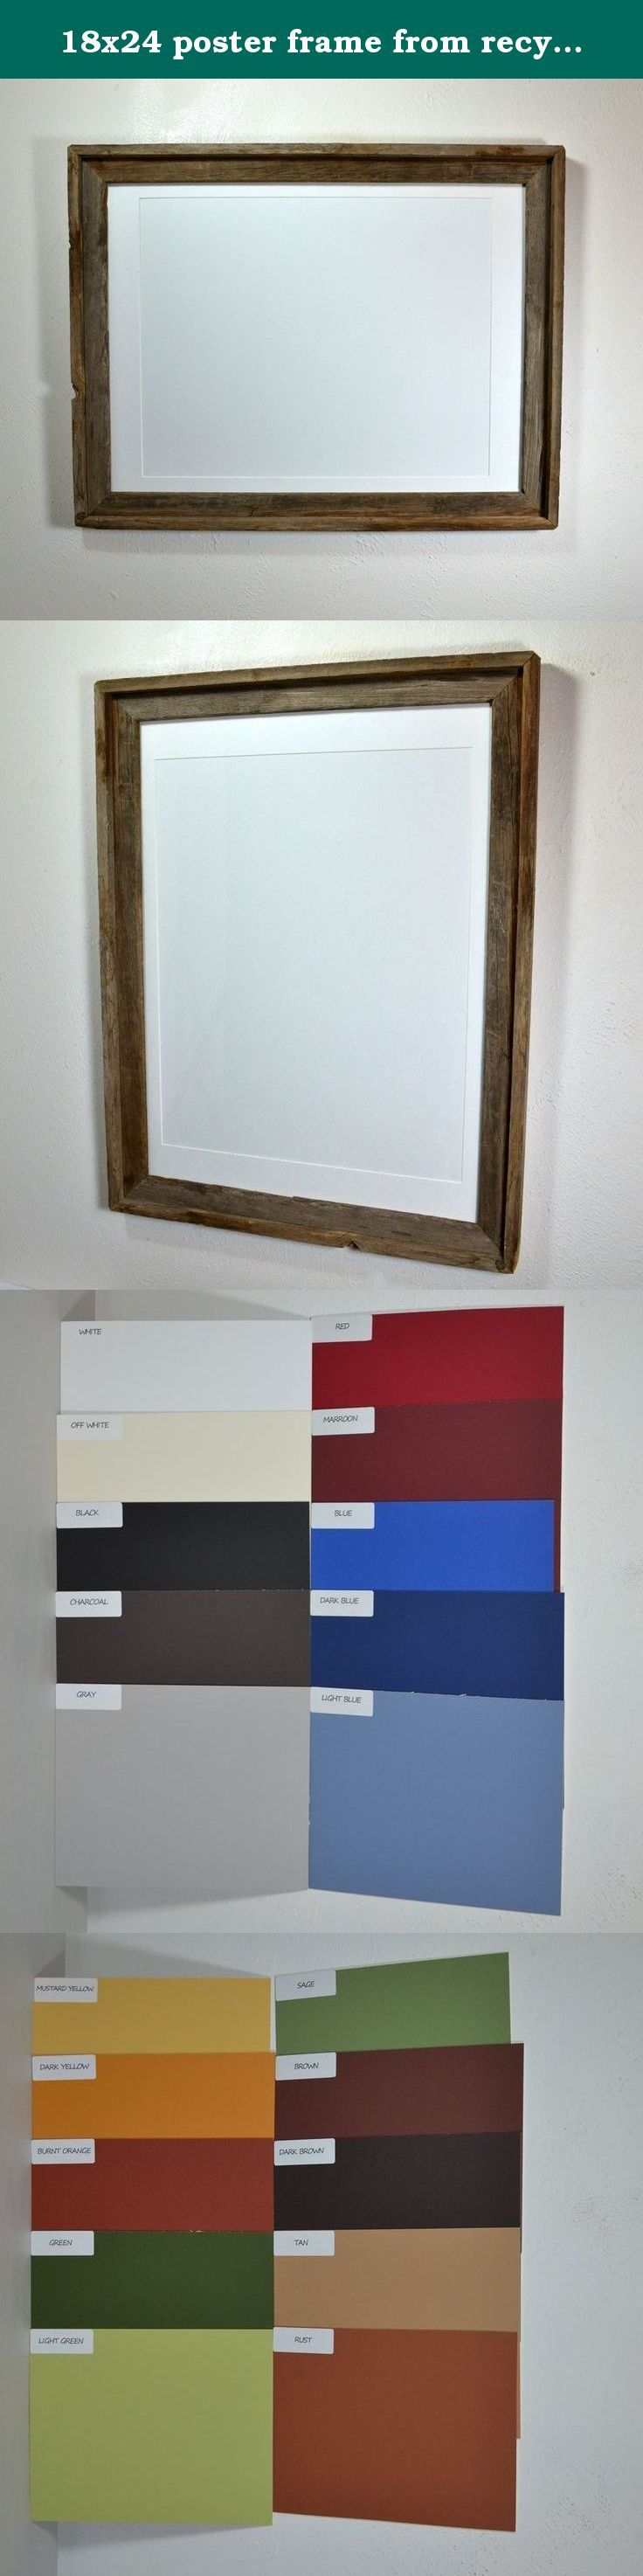 18x24 poster frame from recycled wood rustic style. The beautiful natural patina on this frame will make it one of your favorites. Fits a 18x24 sized print without a mat or a variety of sizes with a mat. 20 mat colors to choose from. Comes complete and is ready to ship.